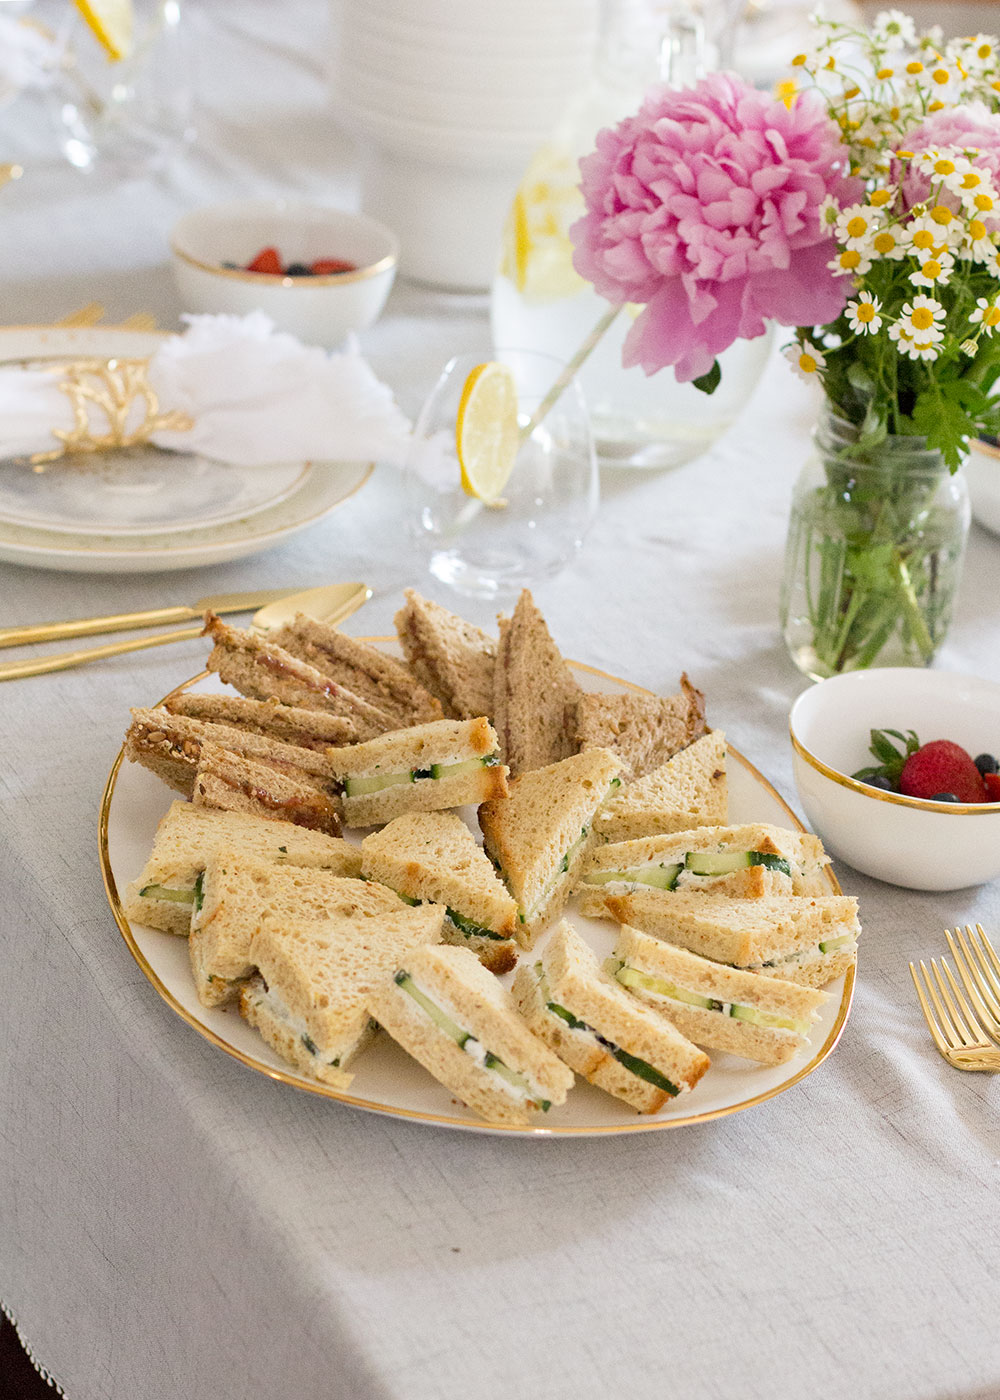 tea sandwiches for a mama luncheon to celebrate mother's day!